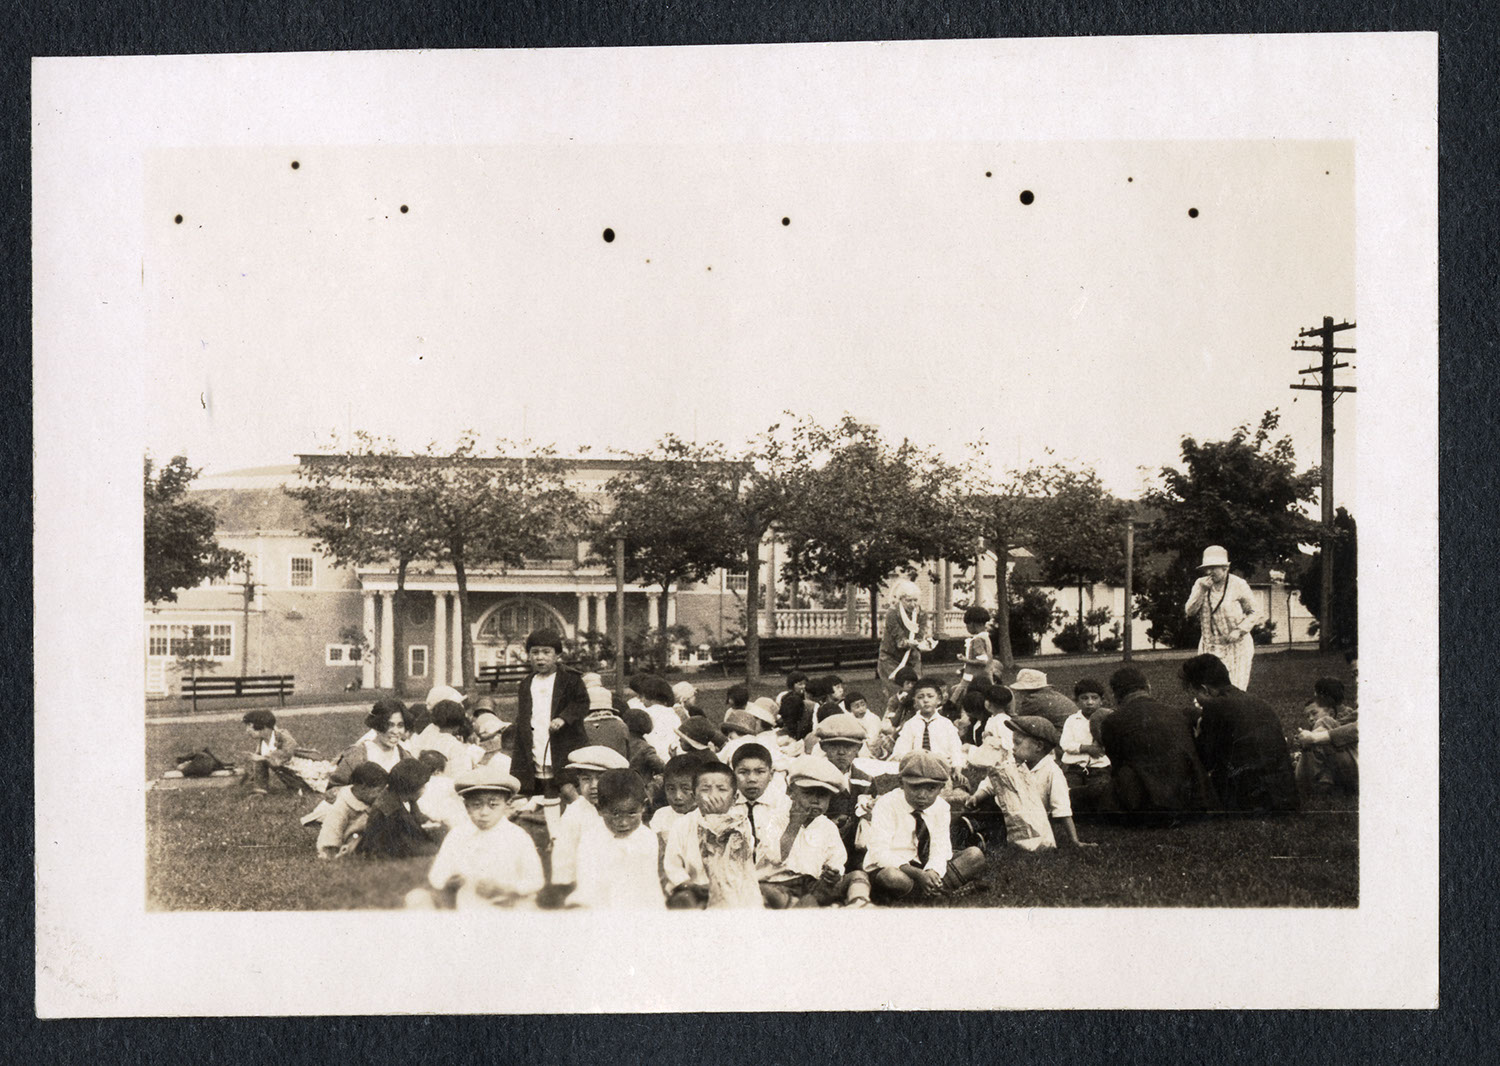 Children's picnic in the park